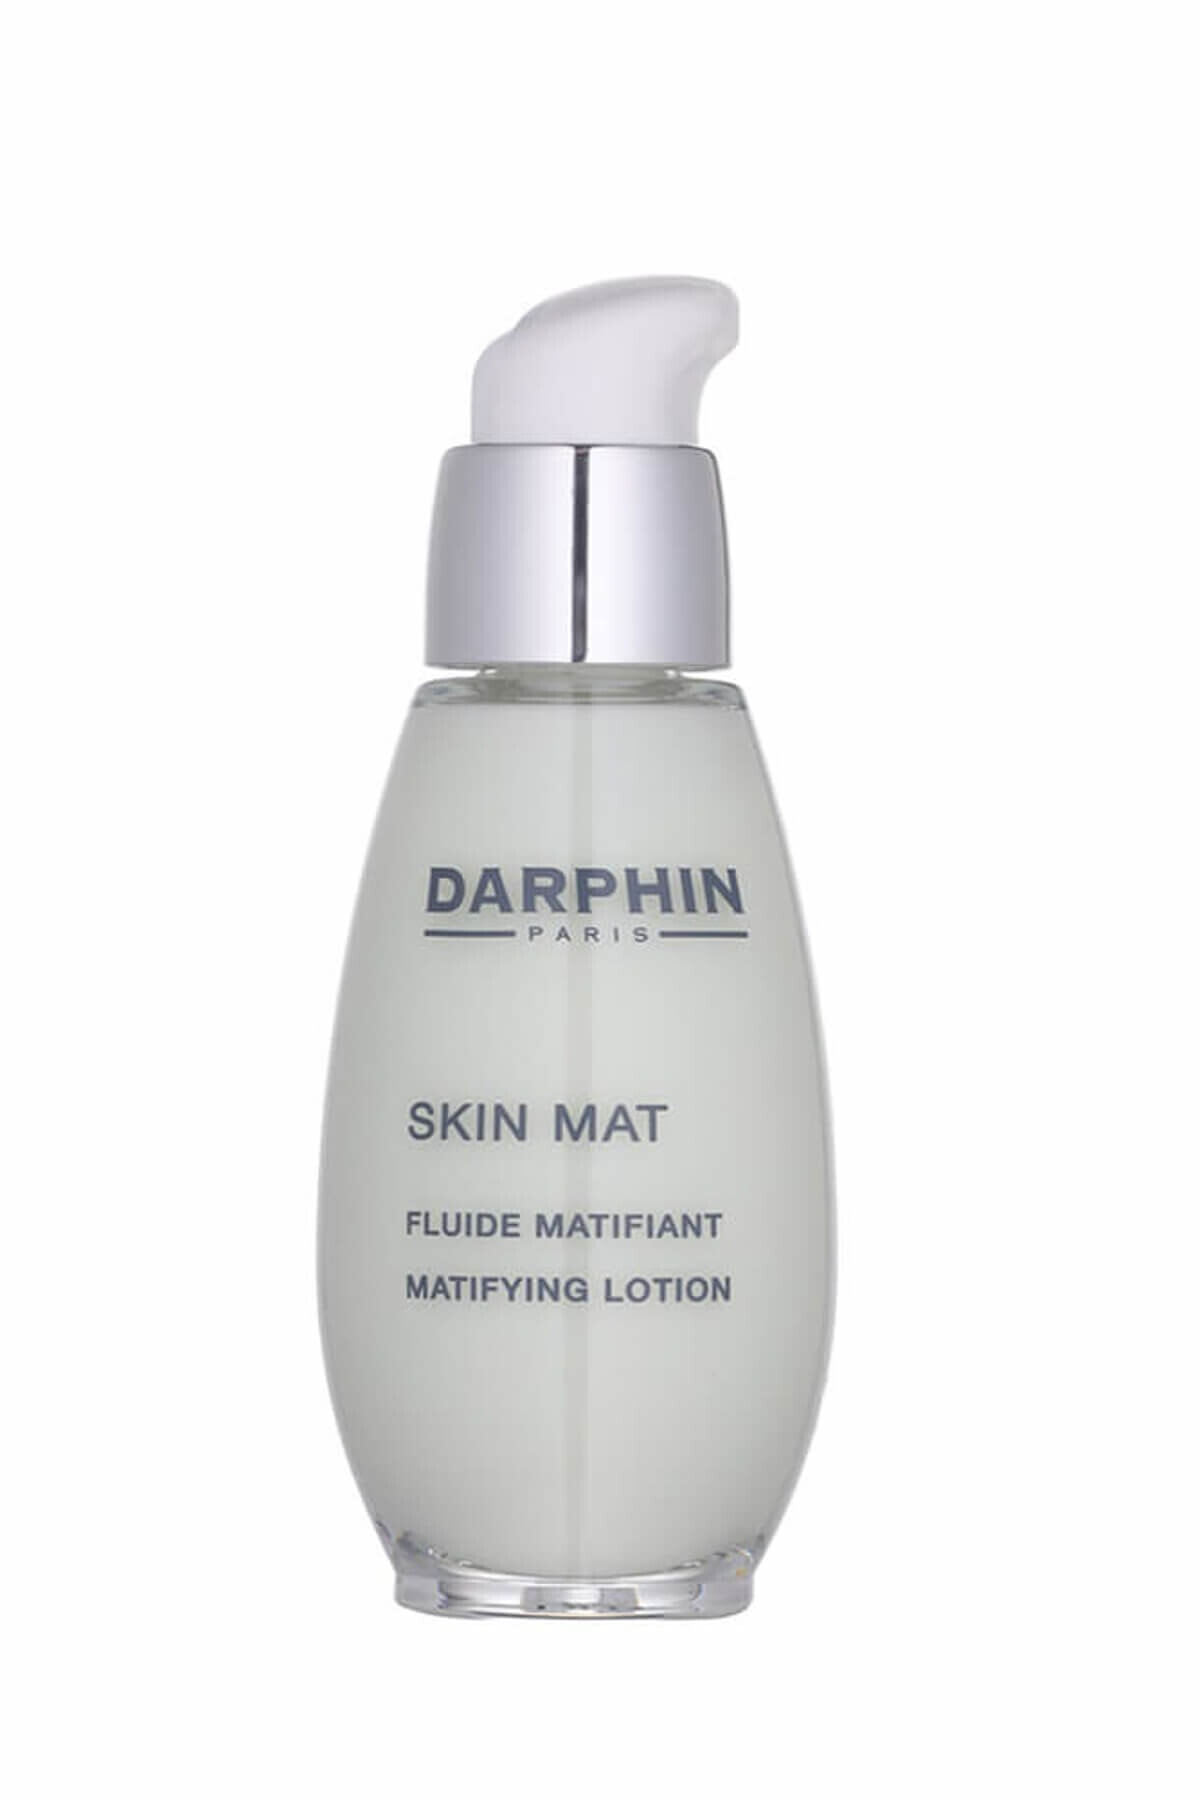 Darphin Skin Mat Matifying Fluid 50ml 1